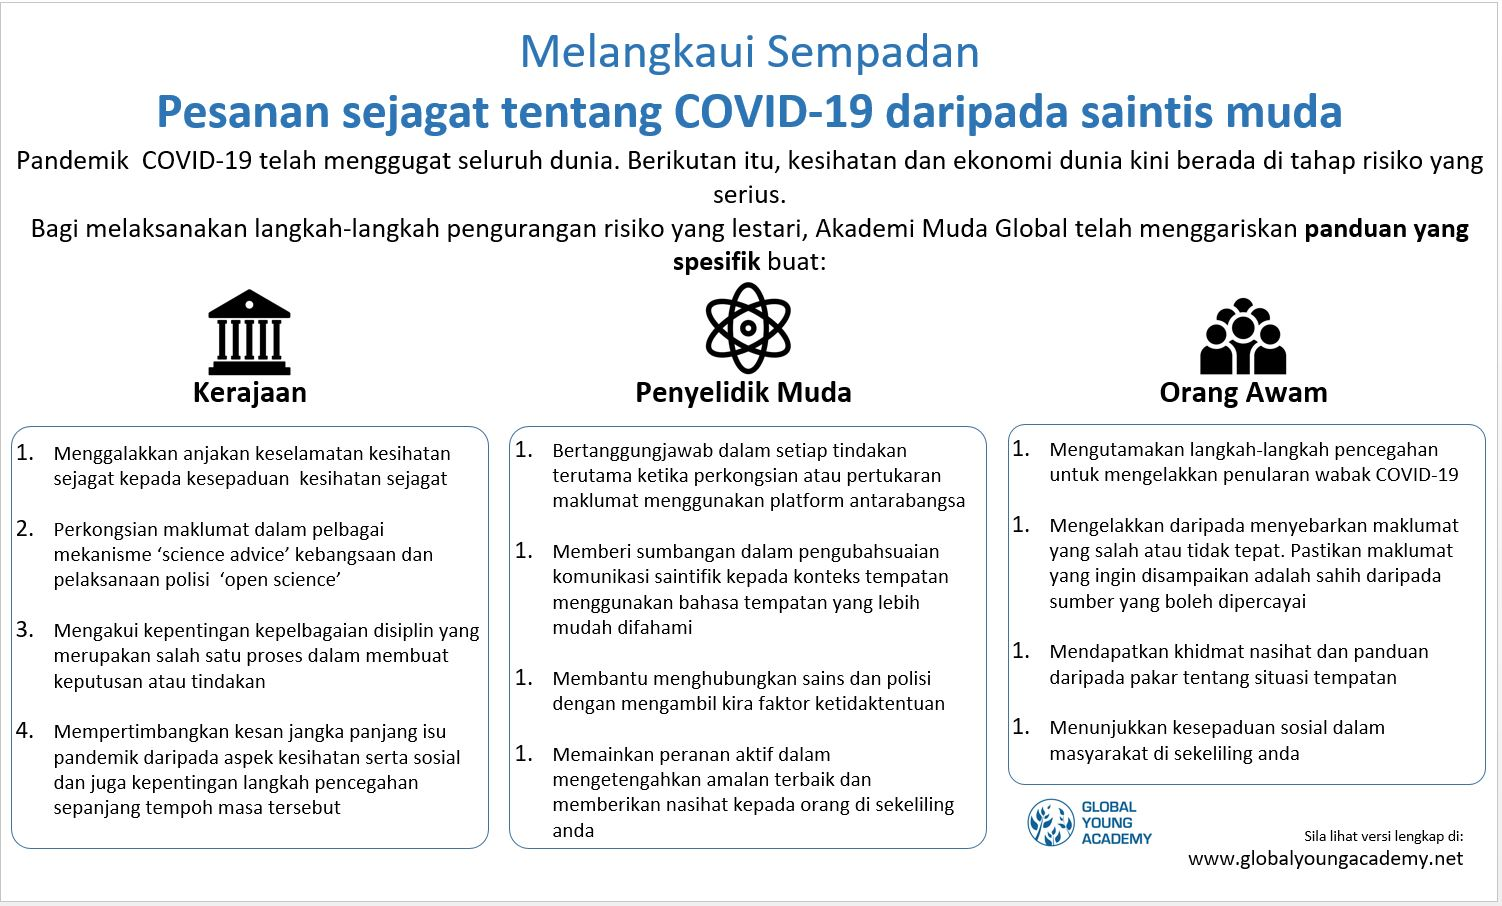 GYA COVID-19 statement infographic - Malay version